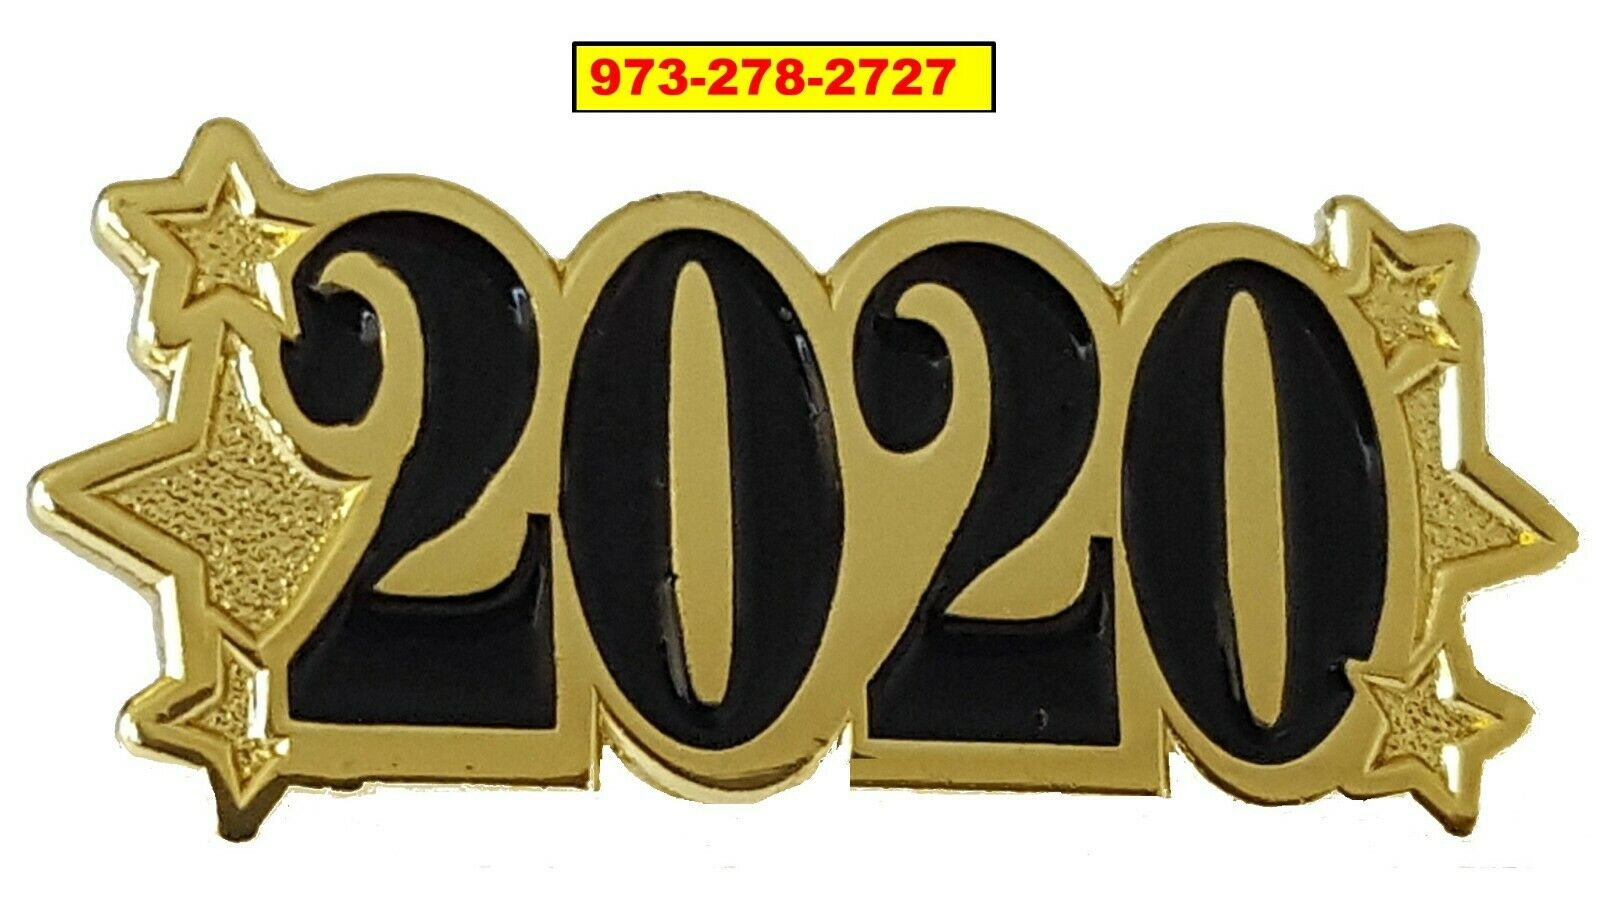 Graduation Gift 48 2020 Graduation Metal Lapel Pin-2020 CLASS OF 2020 STAR PIN